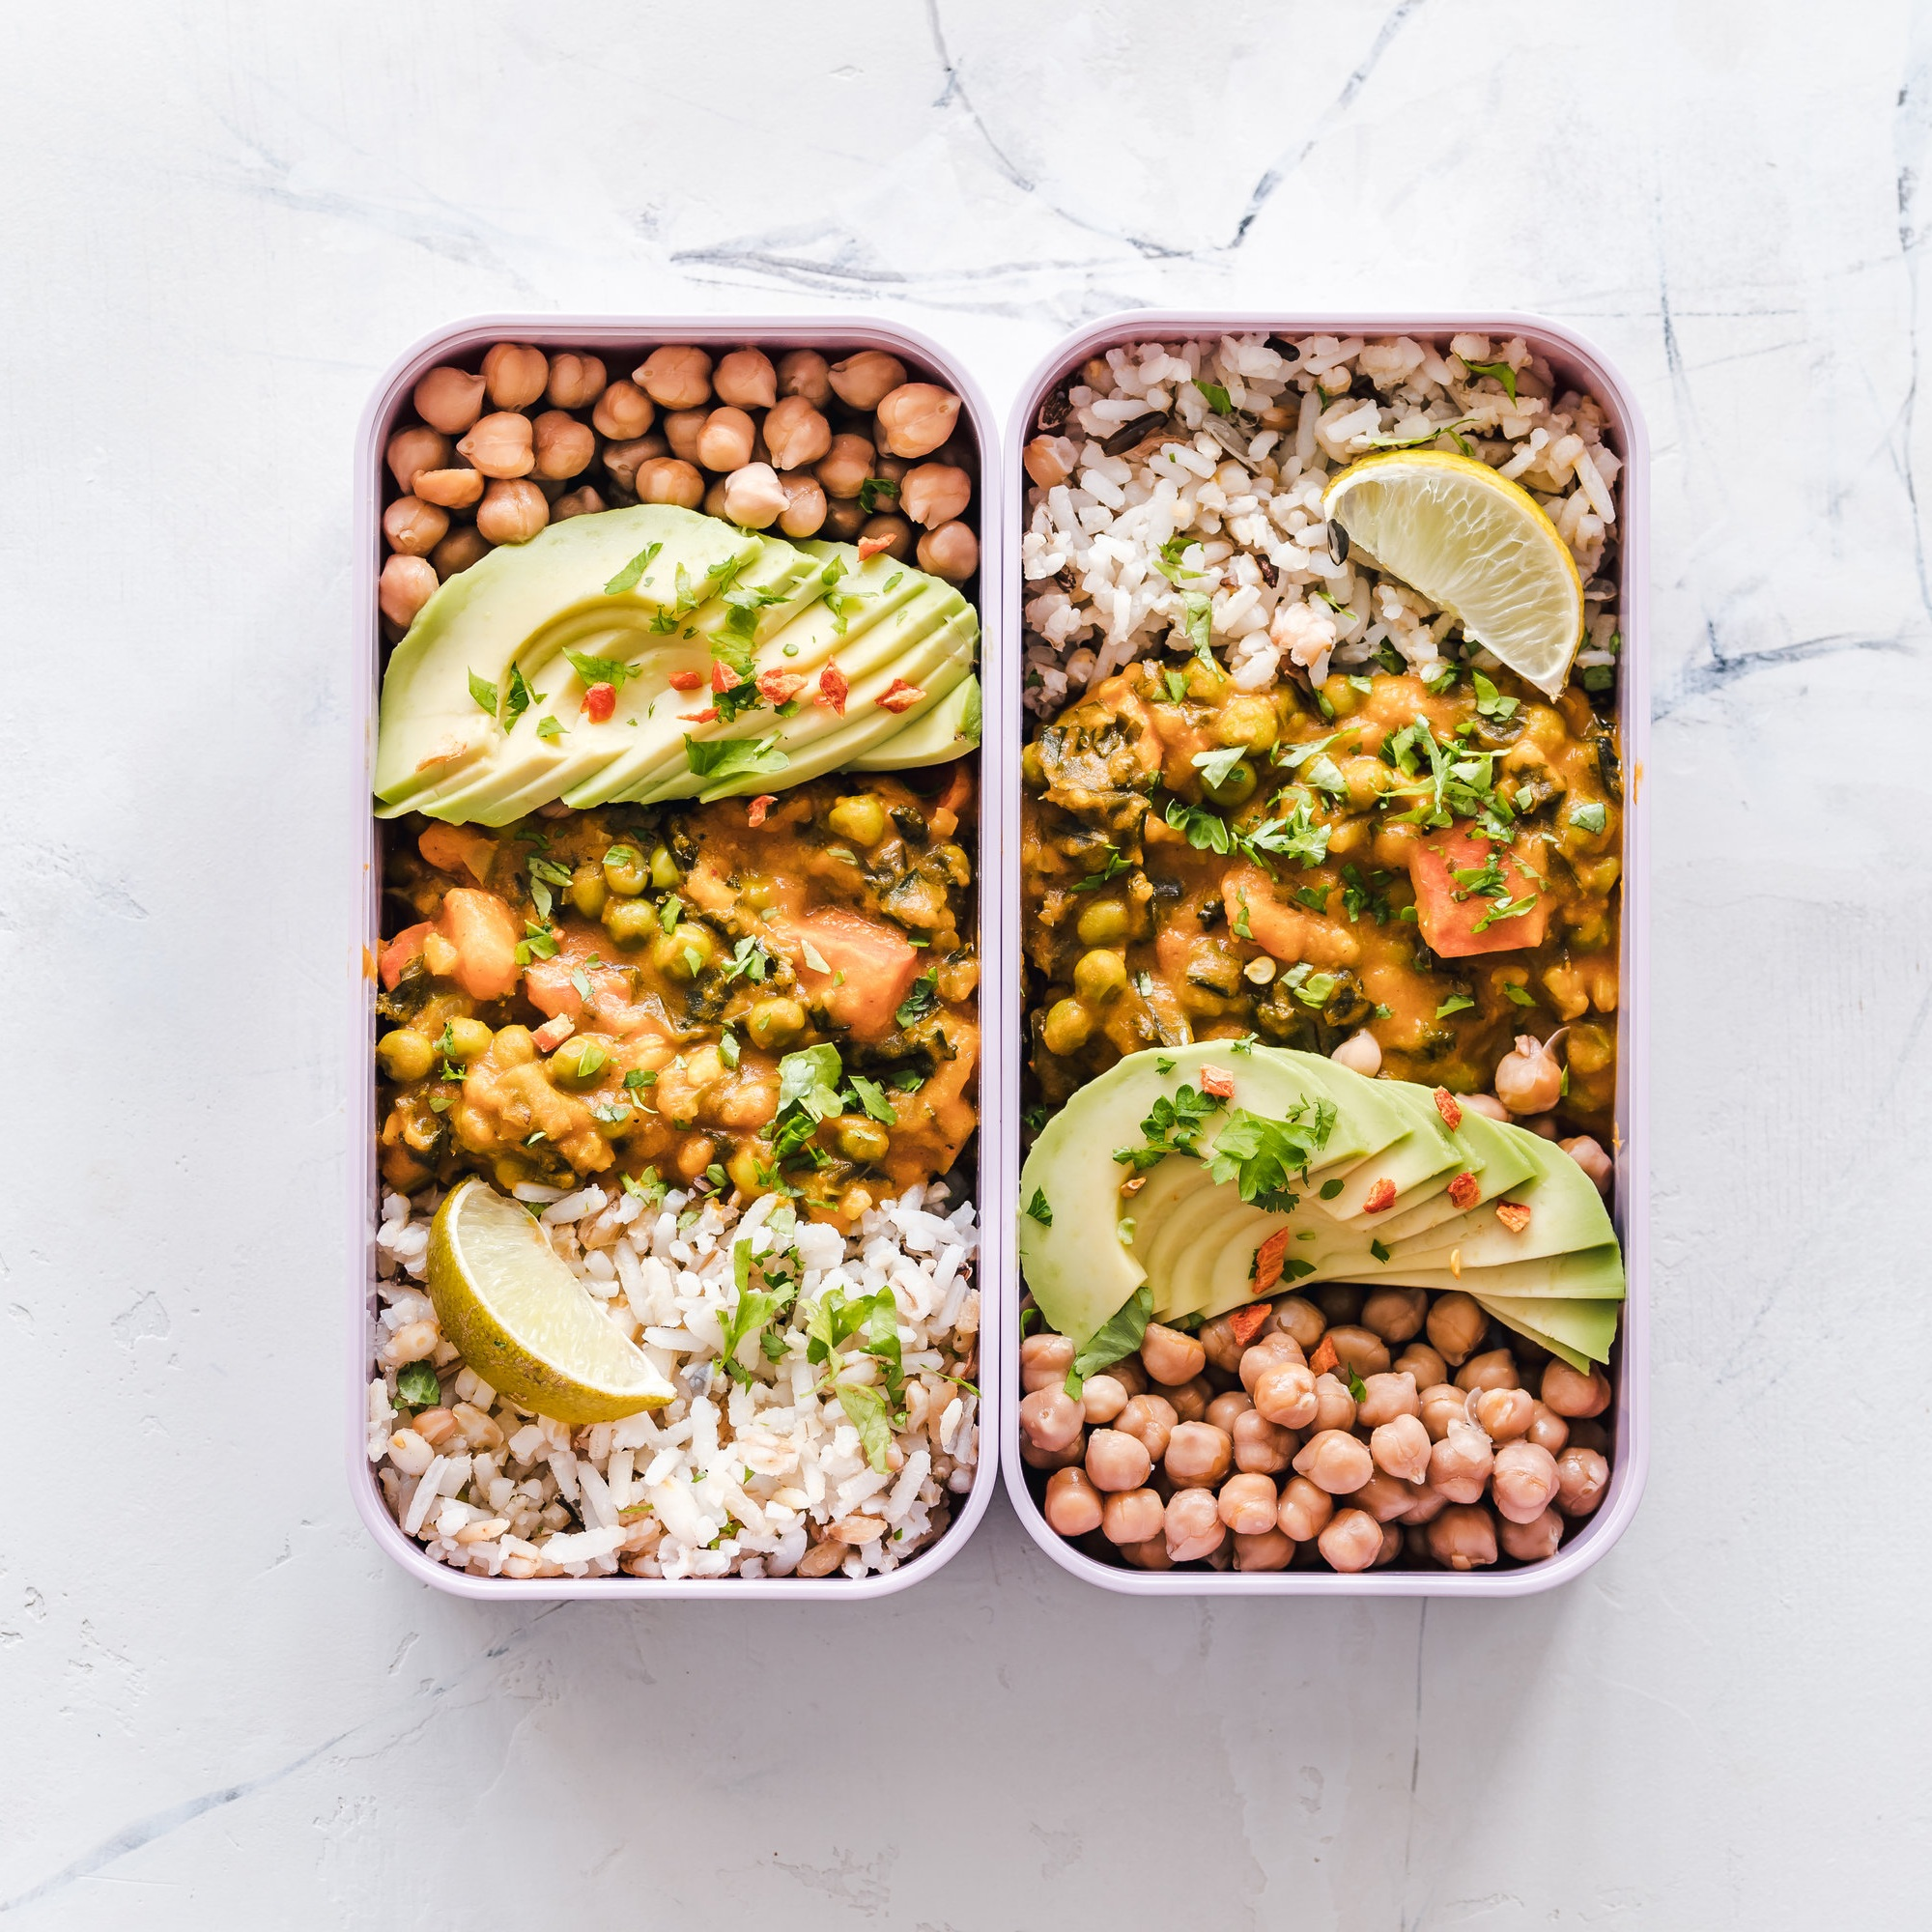 Abs are built in the kitchen - Exercise is crucial, but it isn't everything. All of our success stories have built a strong foundation on a regimented and healthy diet.